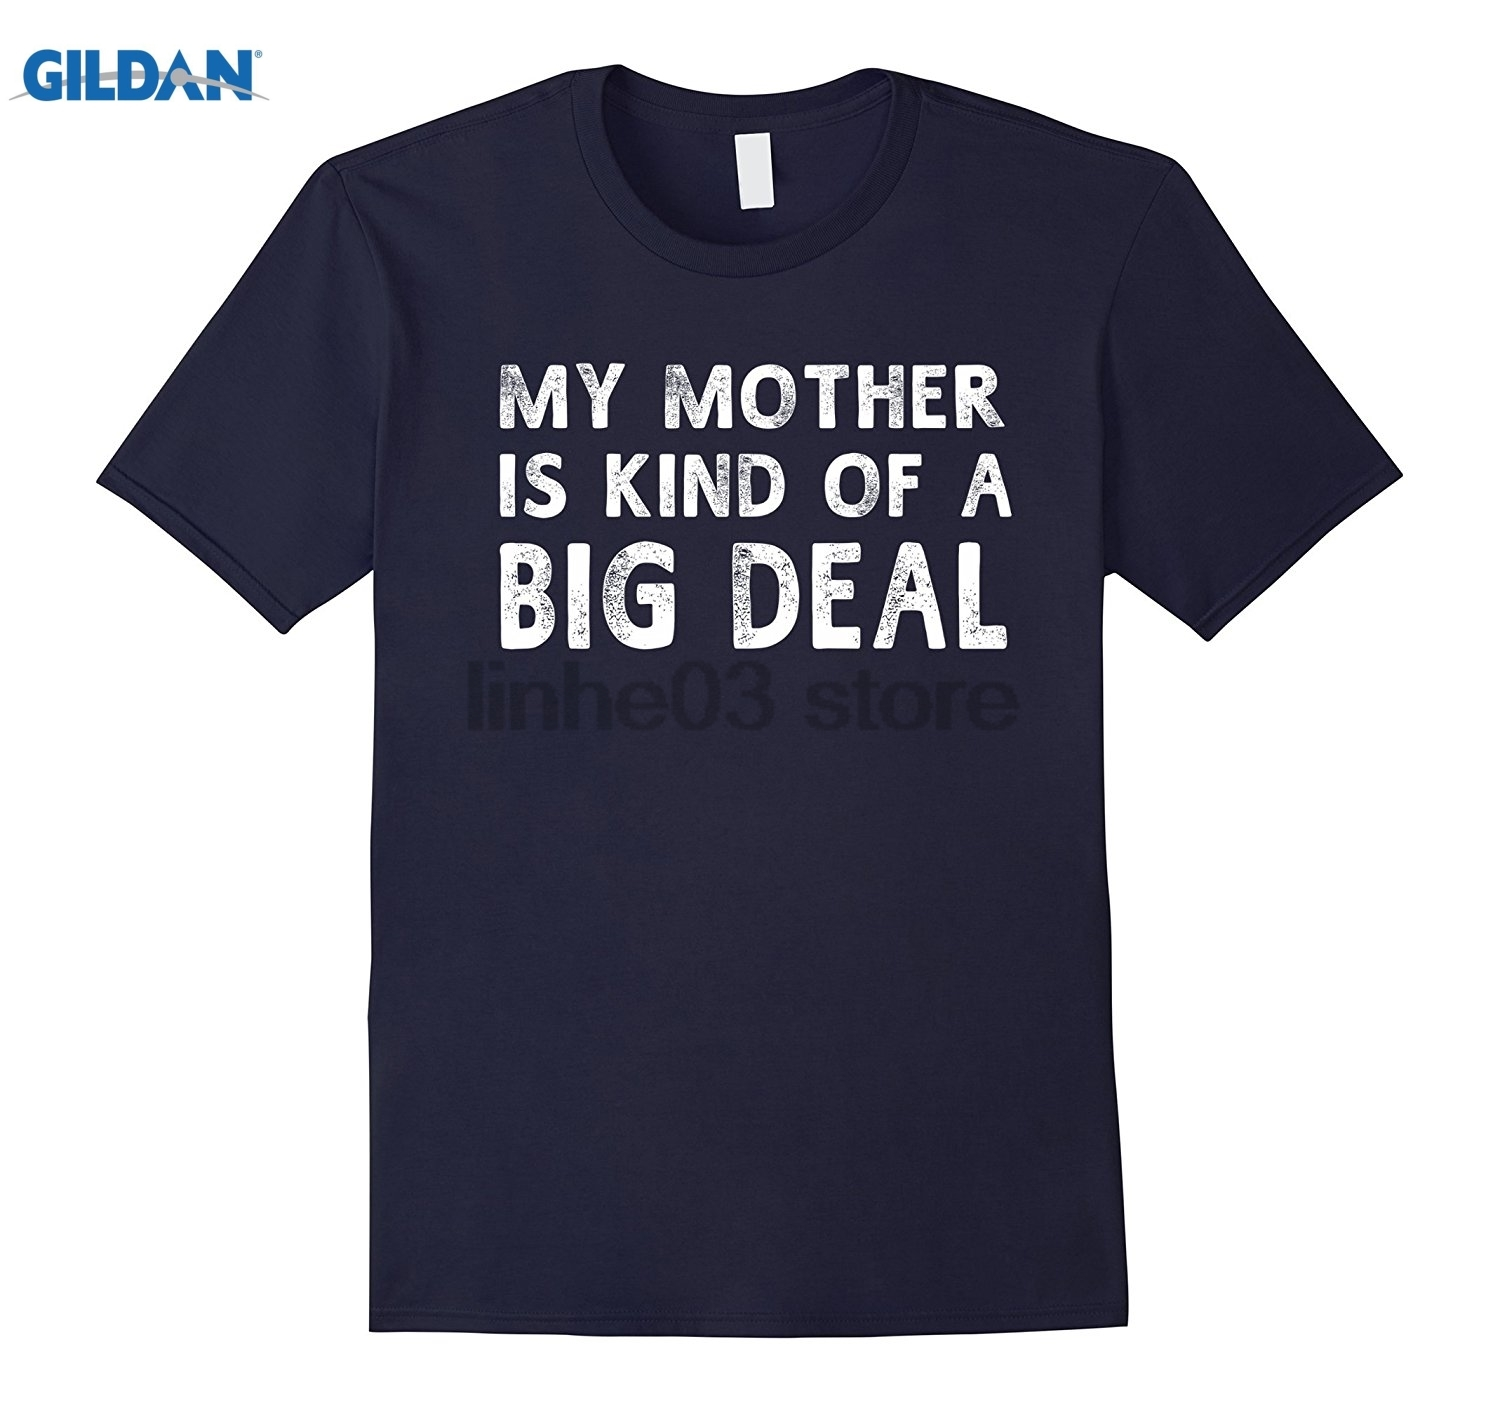 GILDAN My Mother Is Kind Of A Big Deal Mothers Day Gifts T-Shirt sunglasses women T-shirt